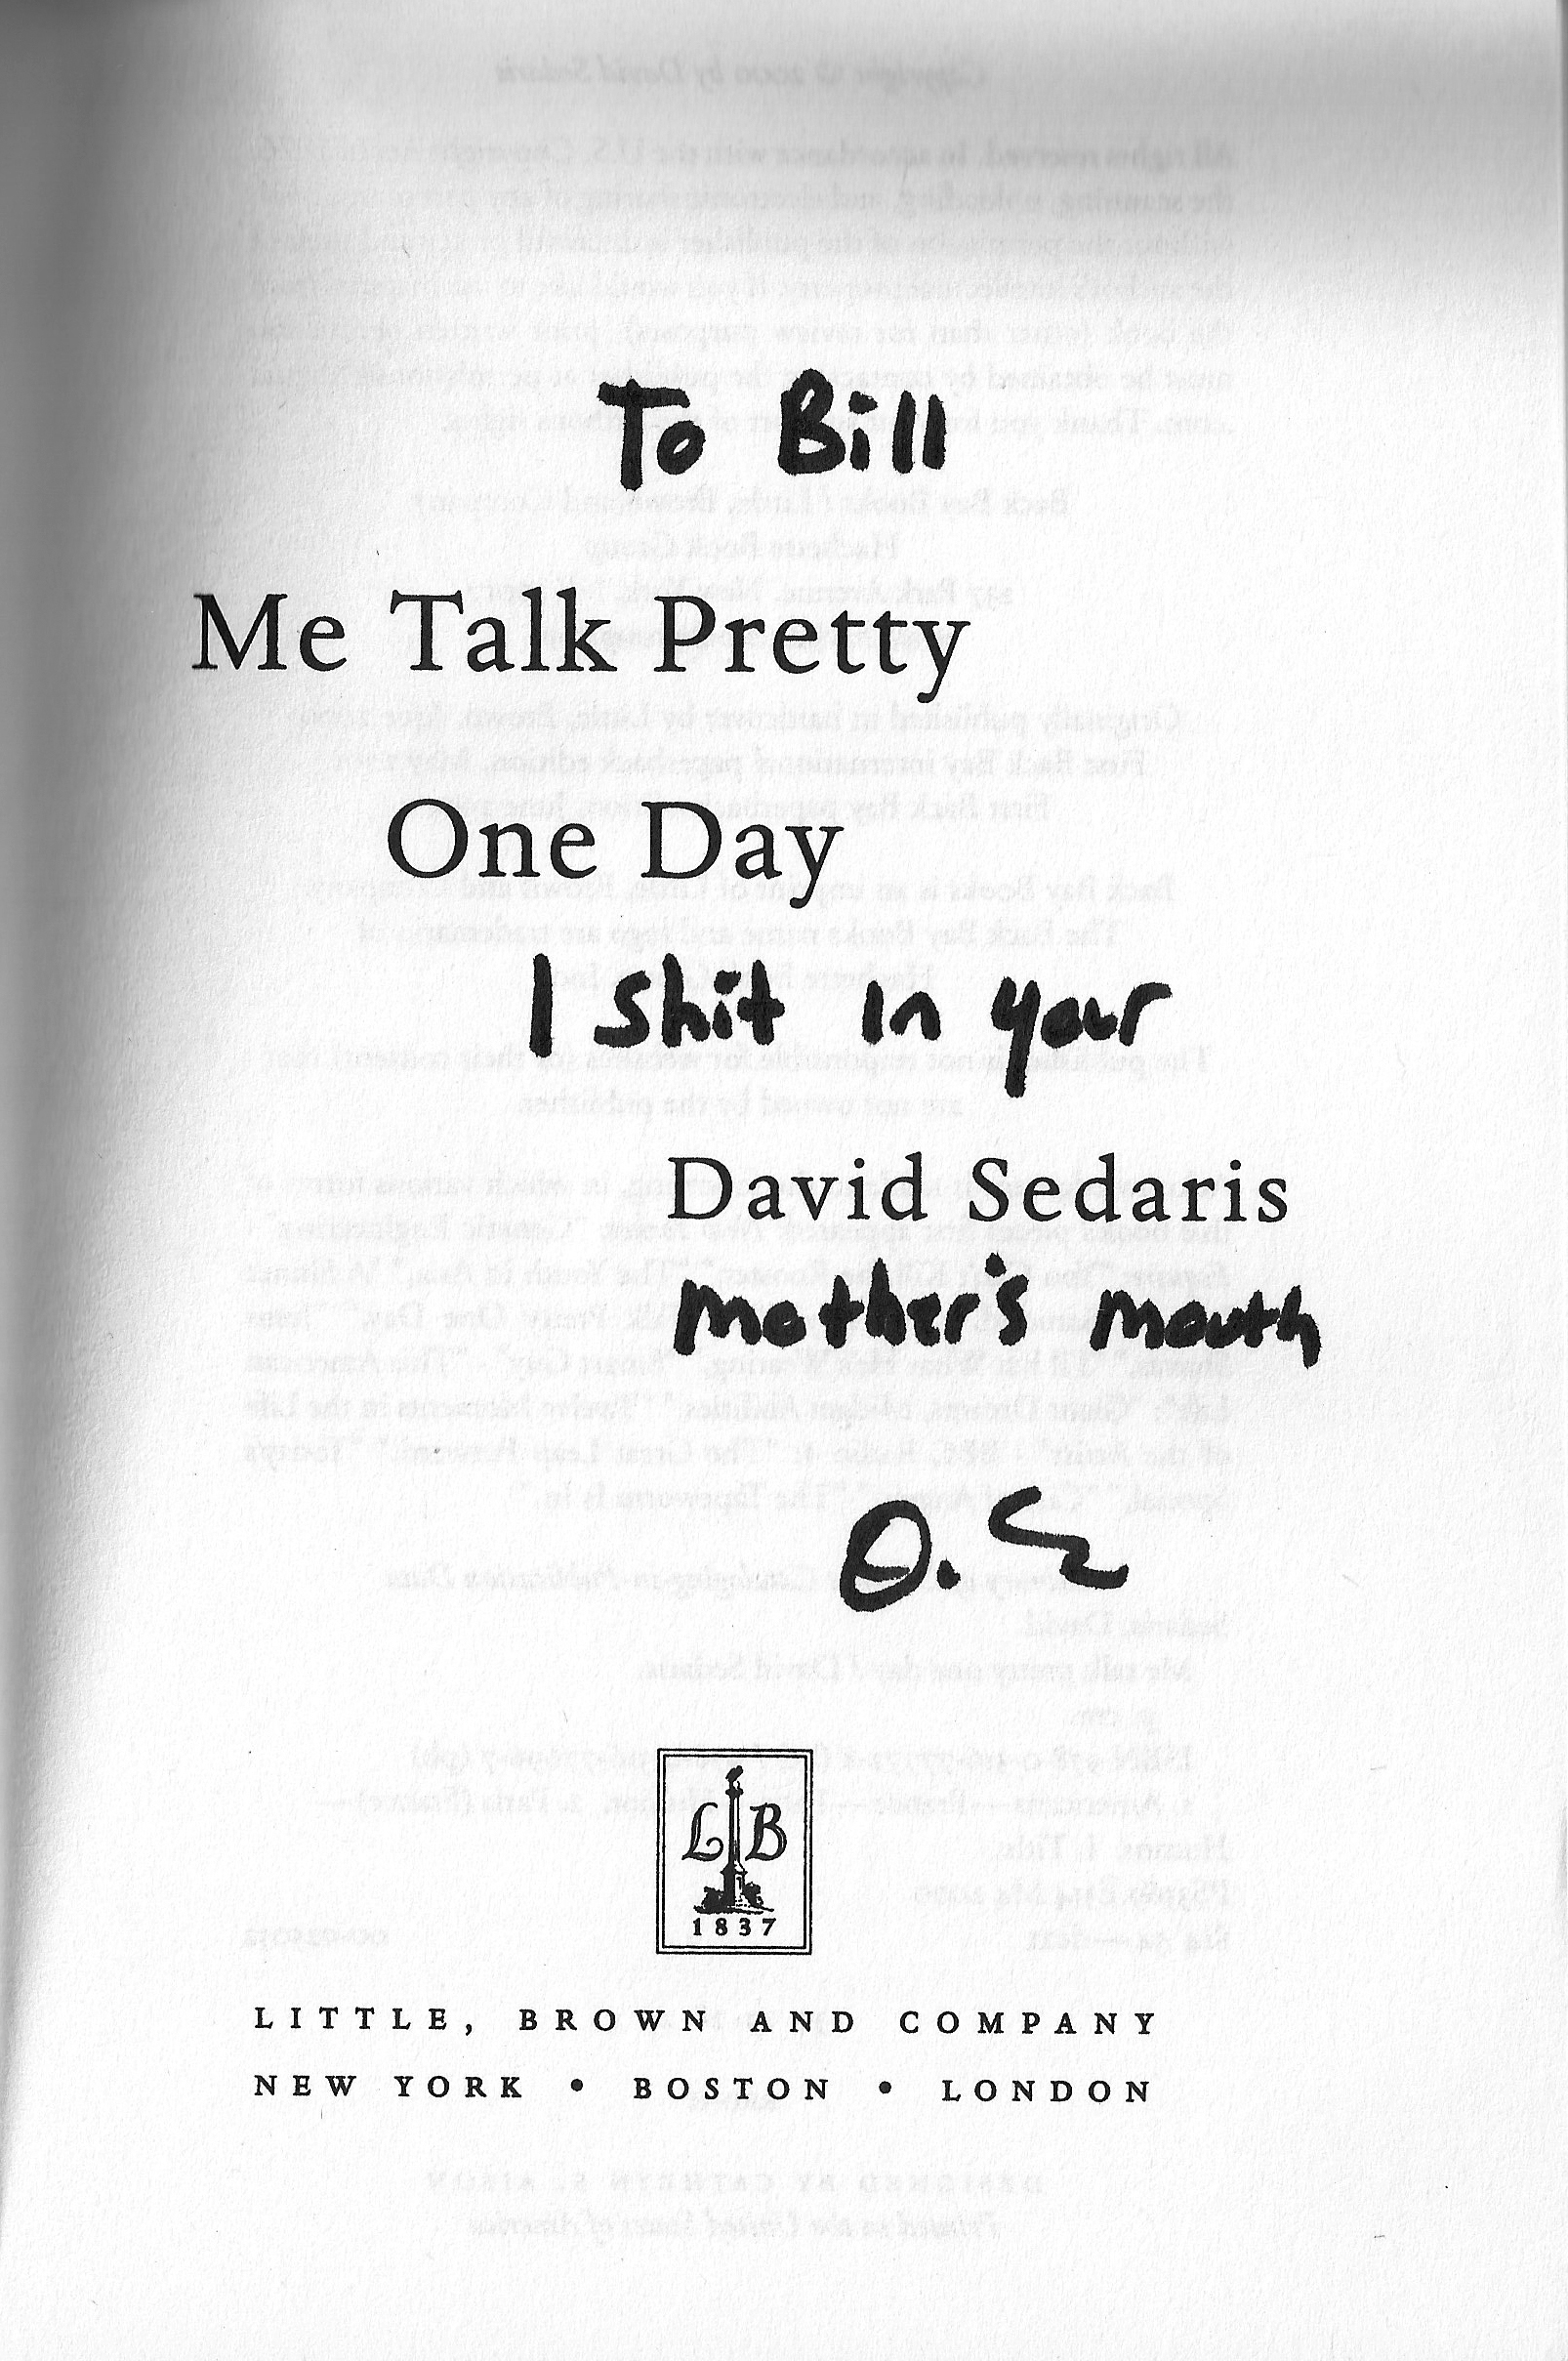 David Sedaris Funny Story